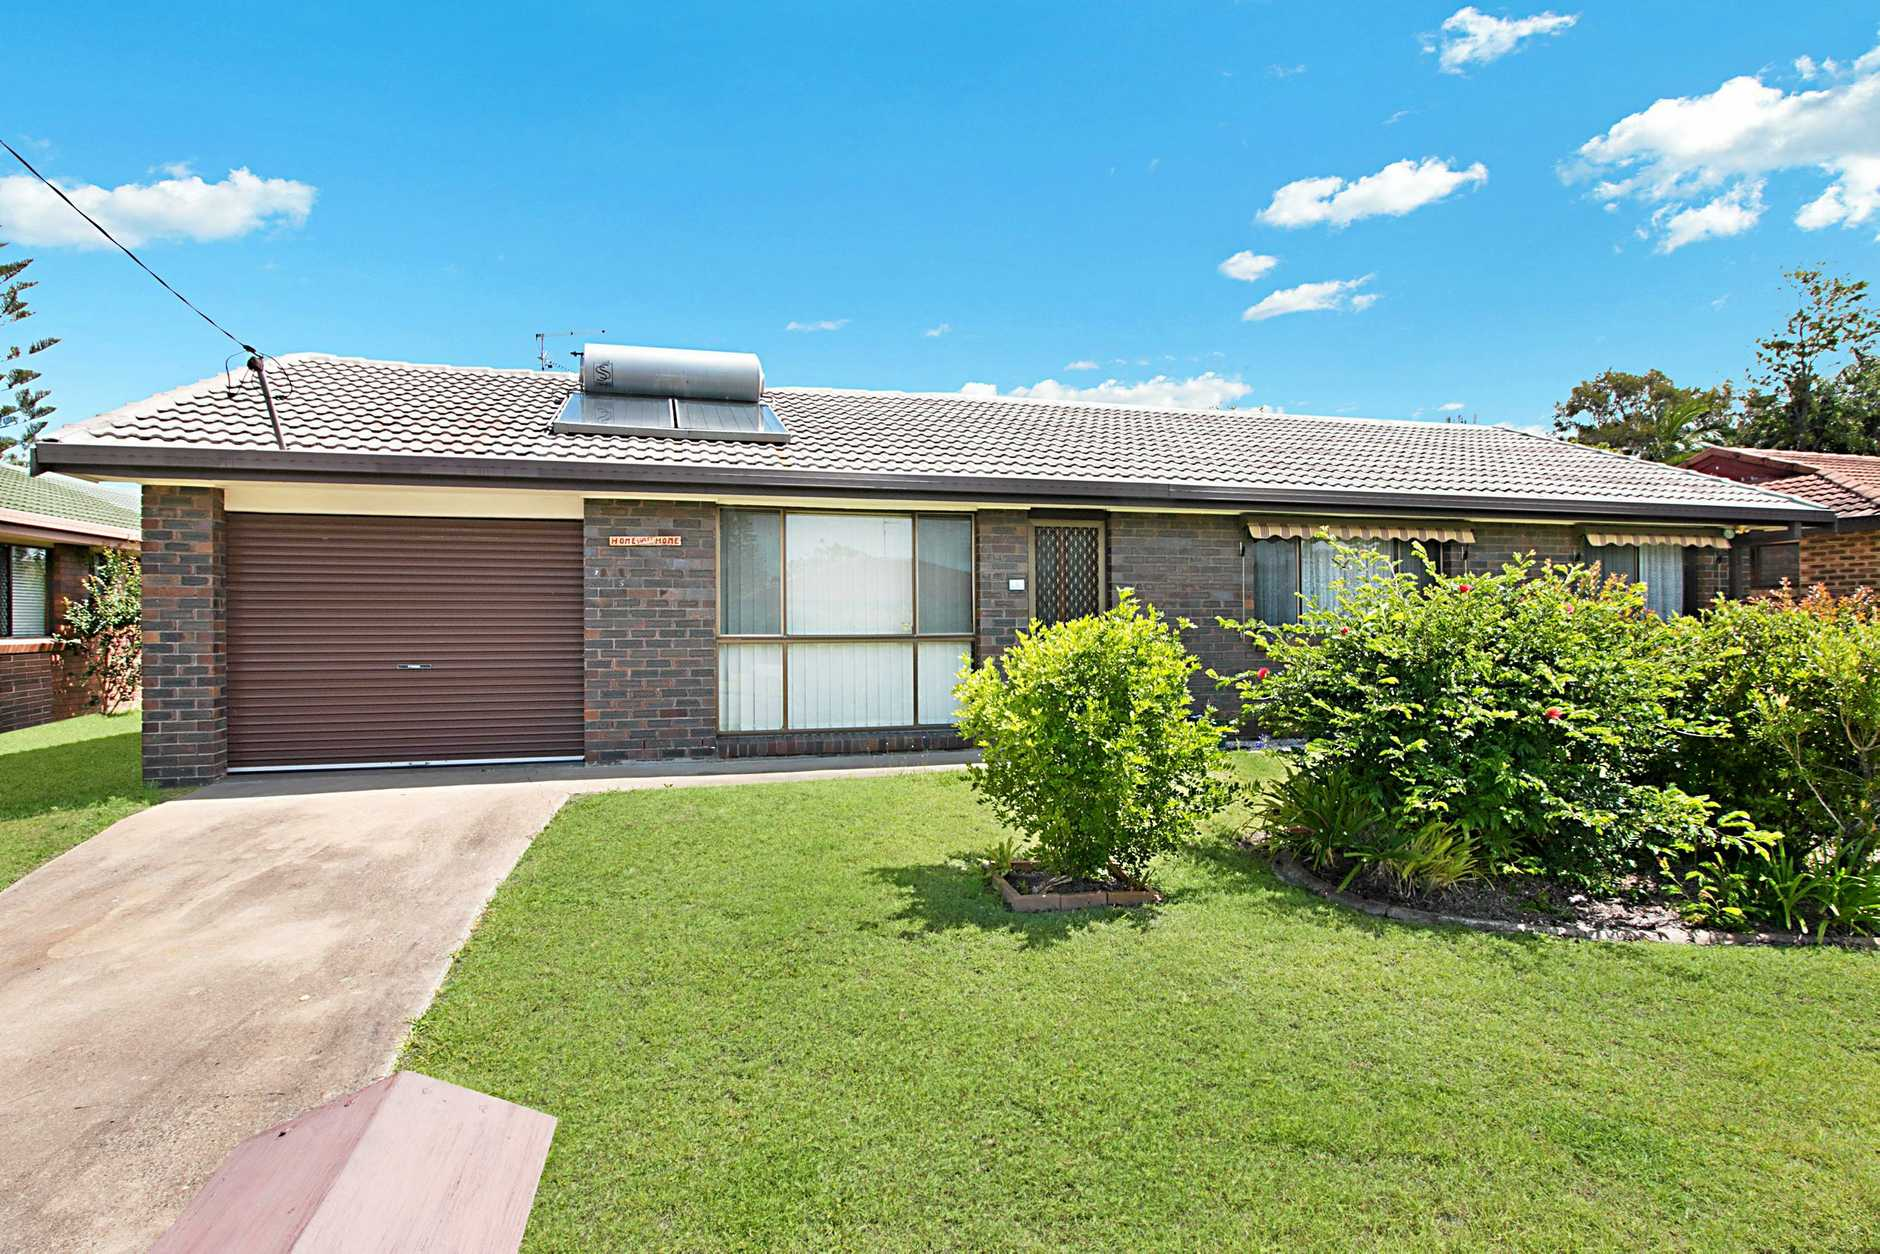 HOME: This property at 90 Blundell Blvd, Tweed Heads South sold for $495,000 by DJ Stringer.